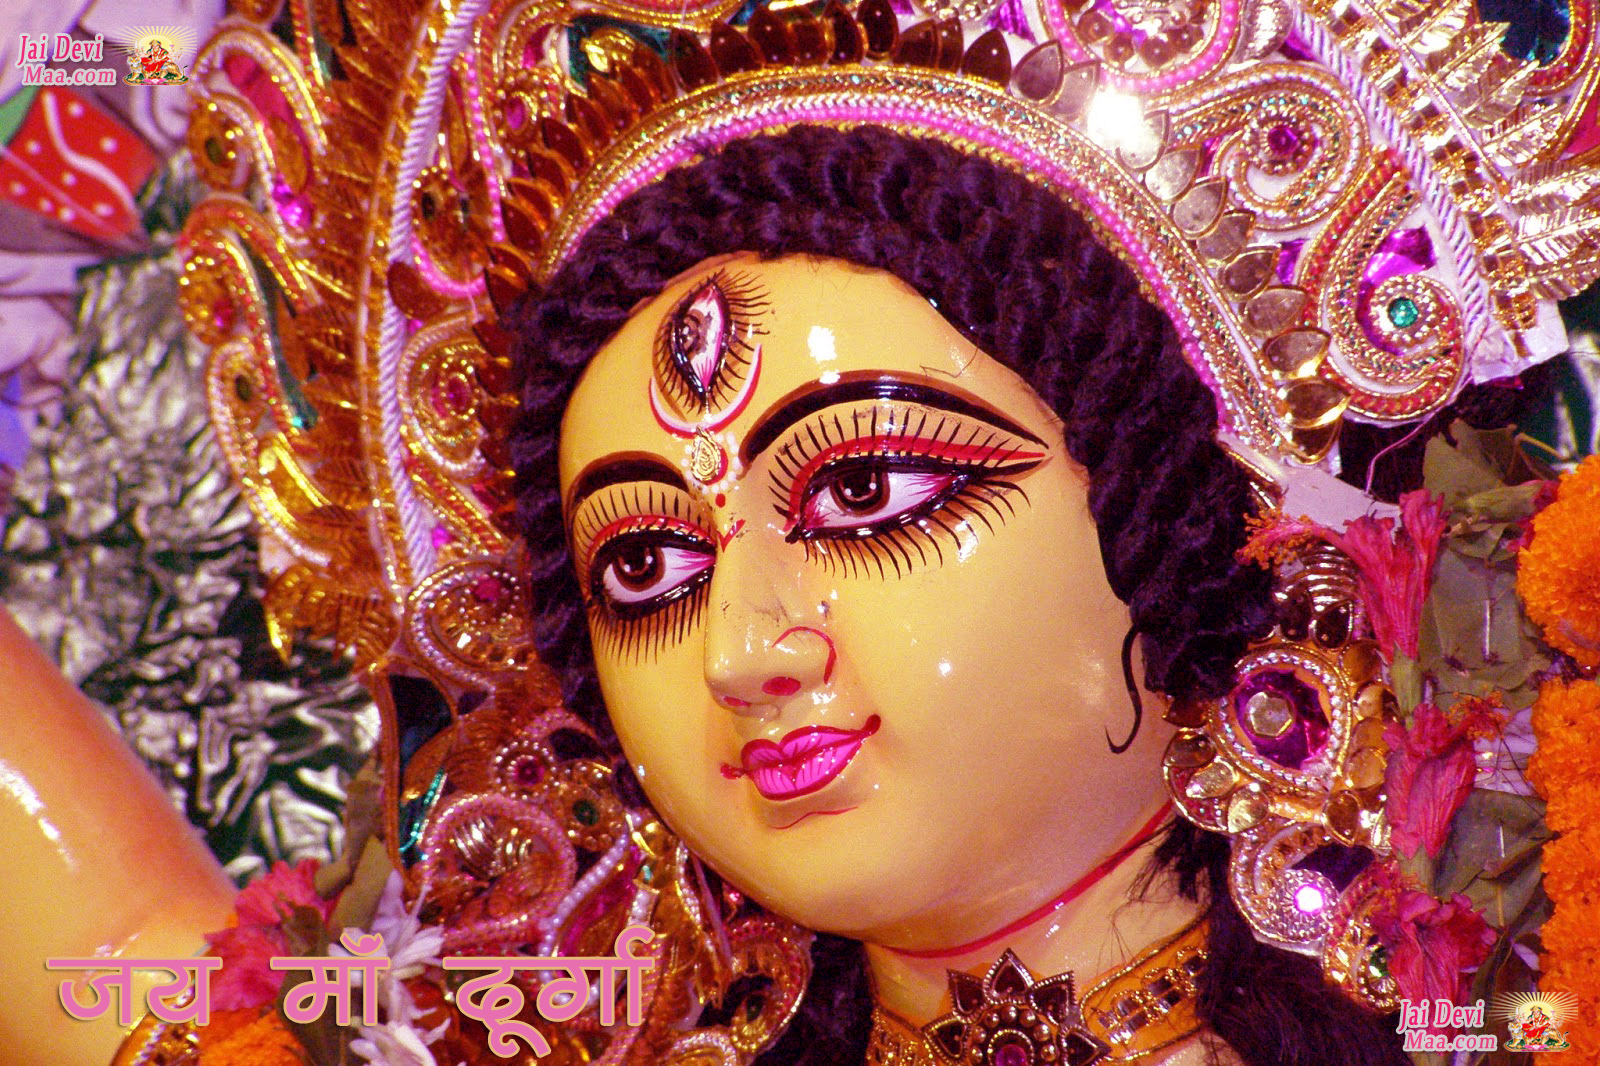 free download desktop wallpaper of maa durga